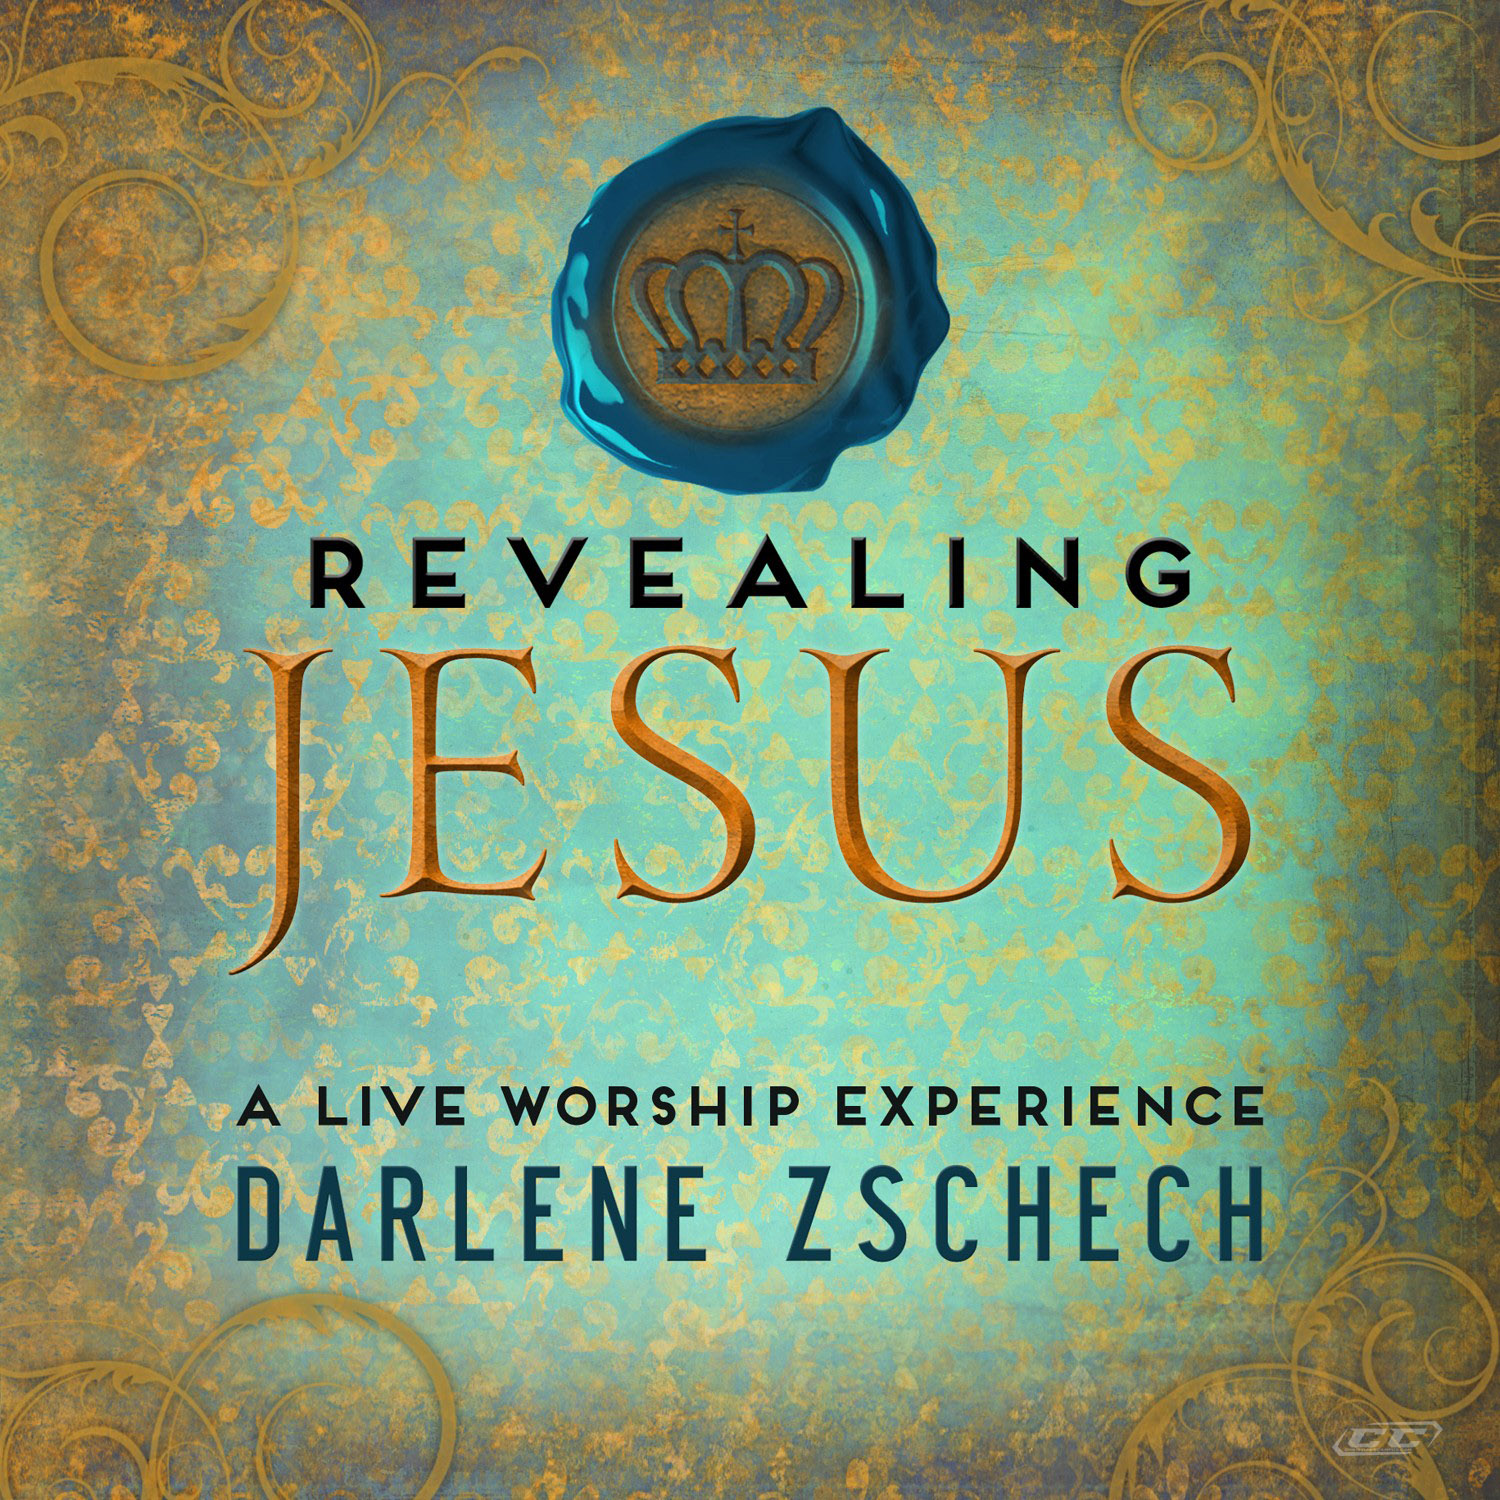 Darlene Zschech - Revealing Jesus 2013 English Christian Worship album download